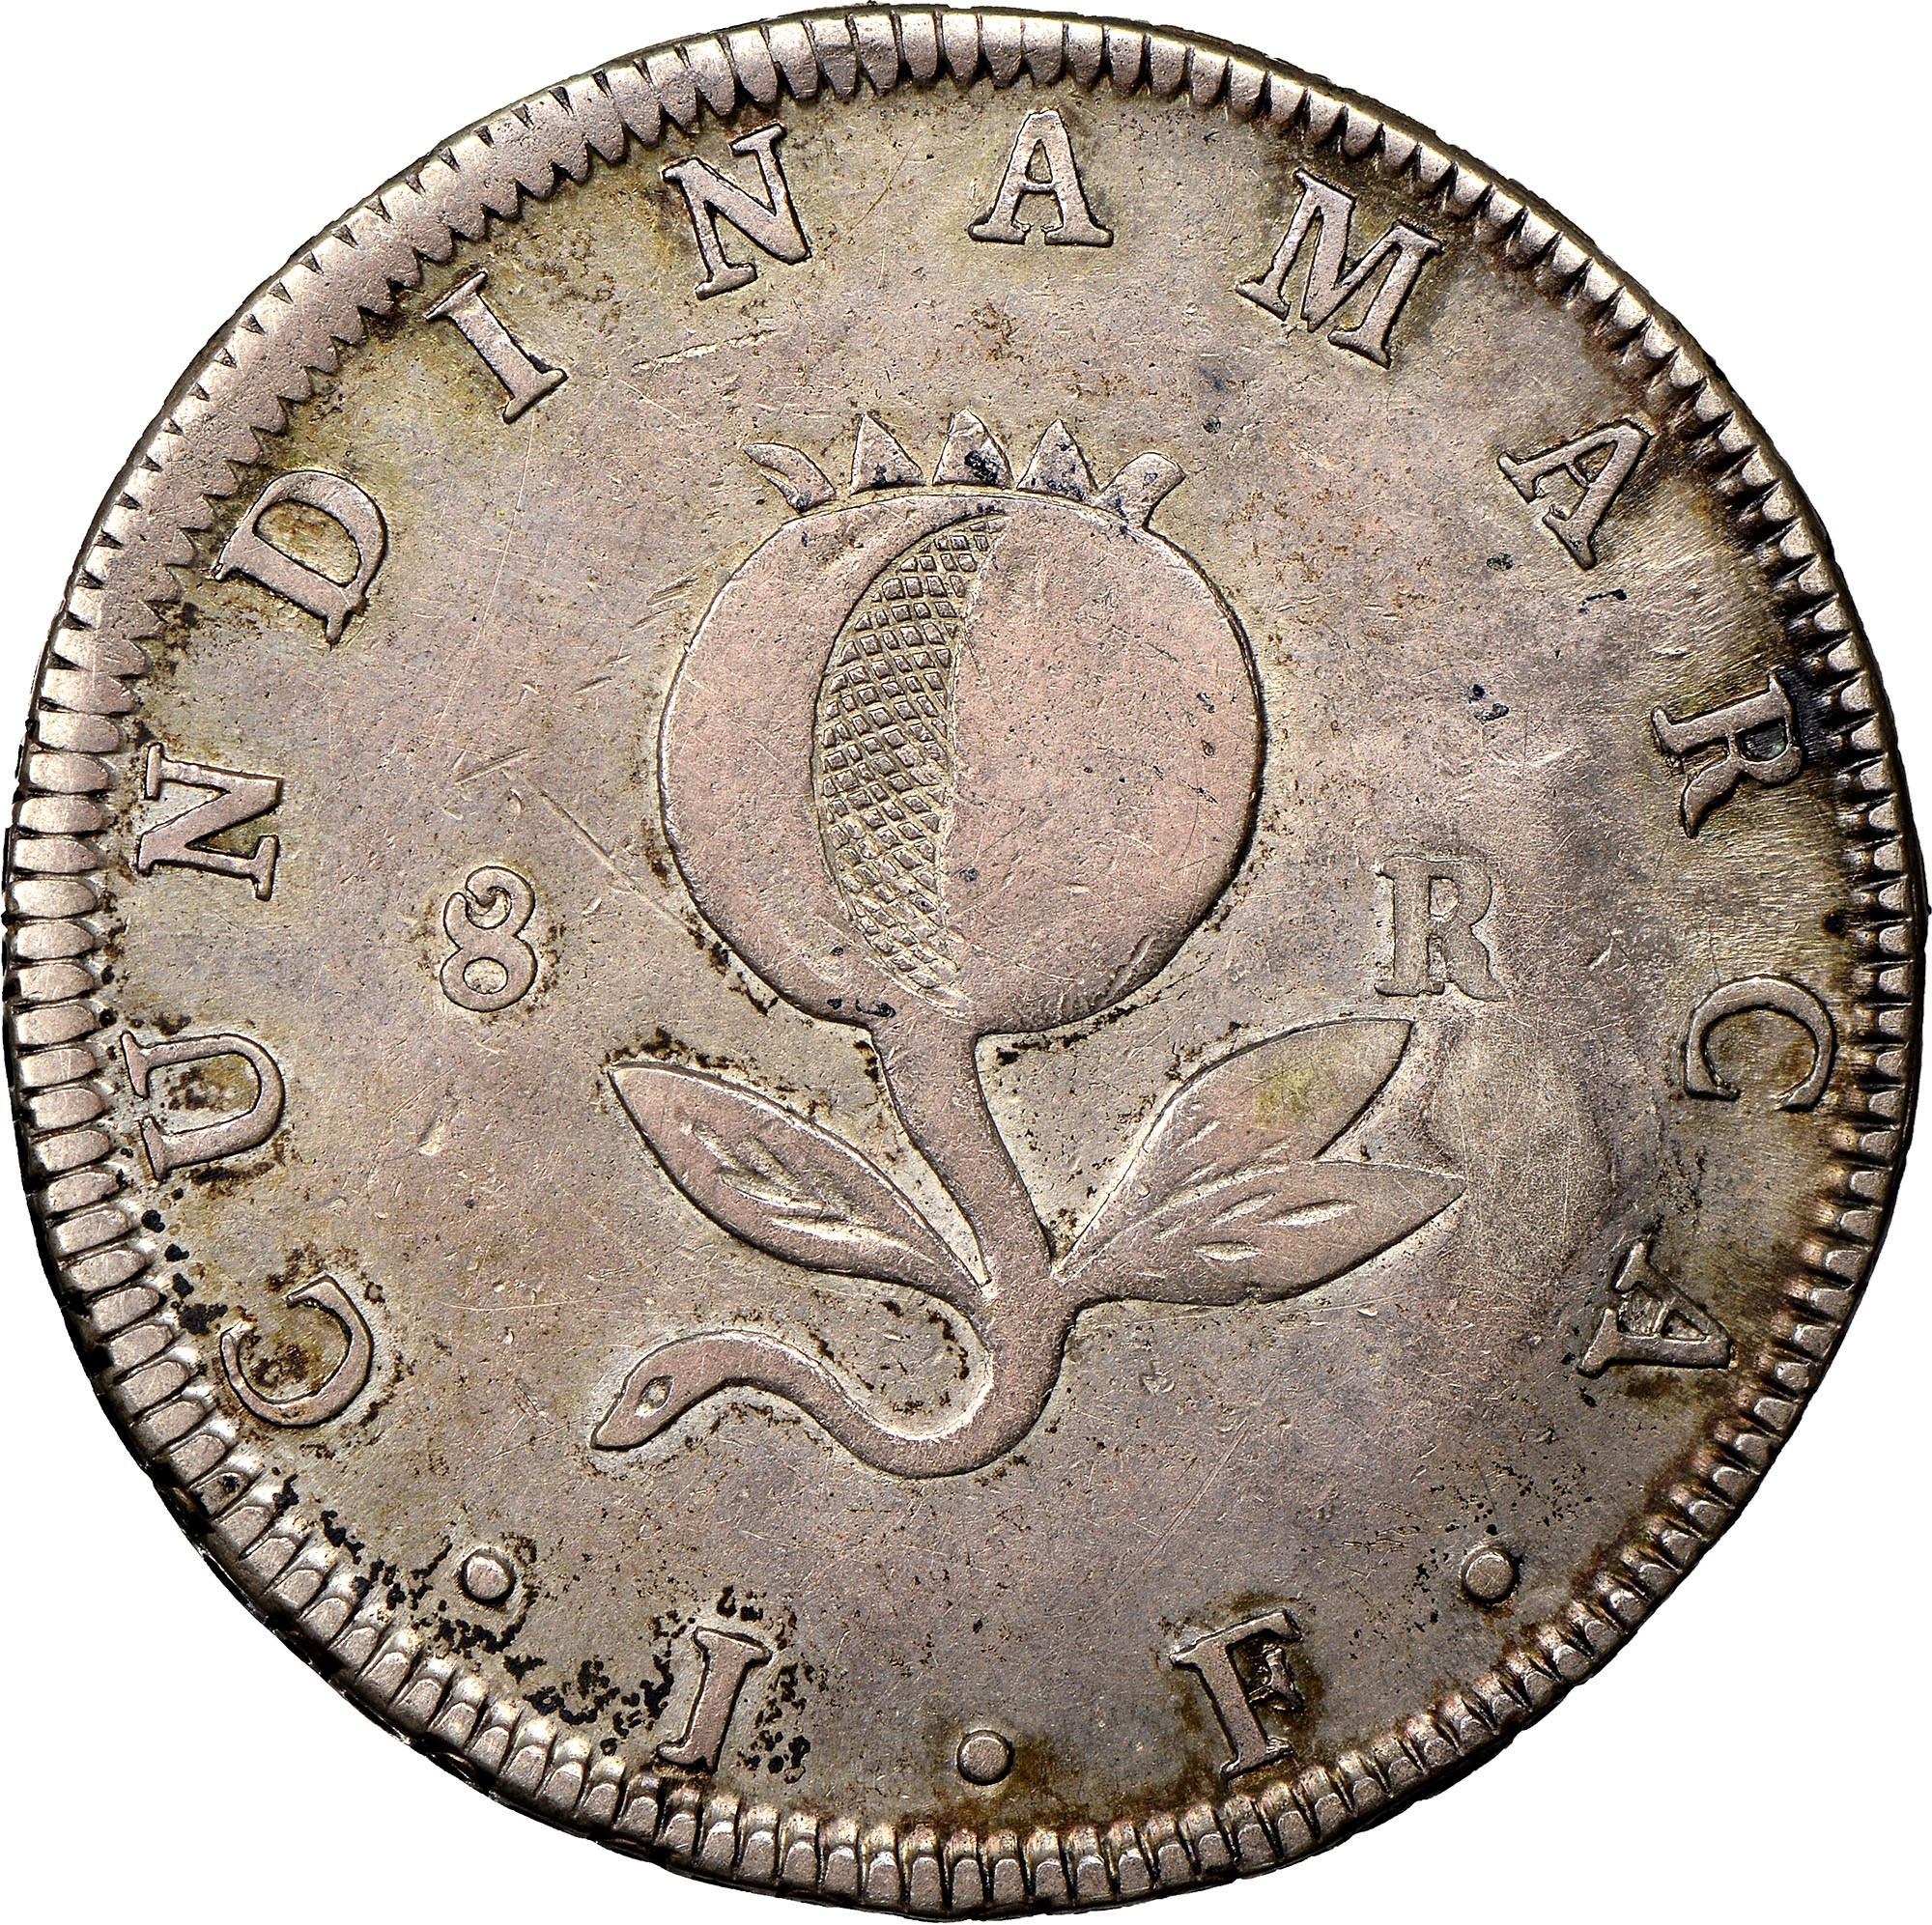 Colombia 8 Reales reverse